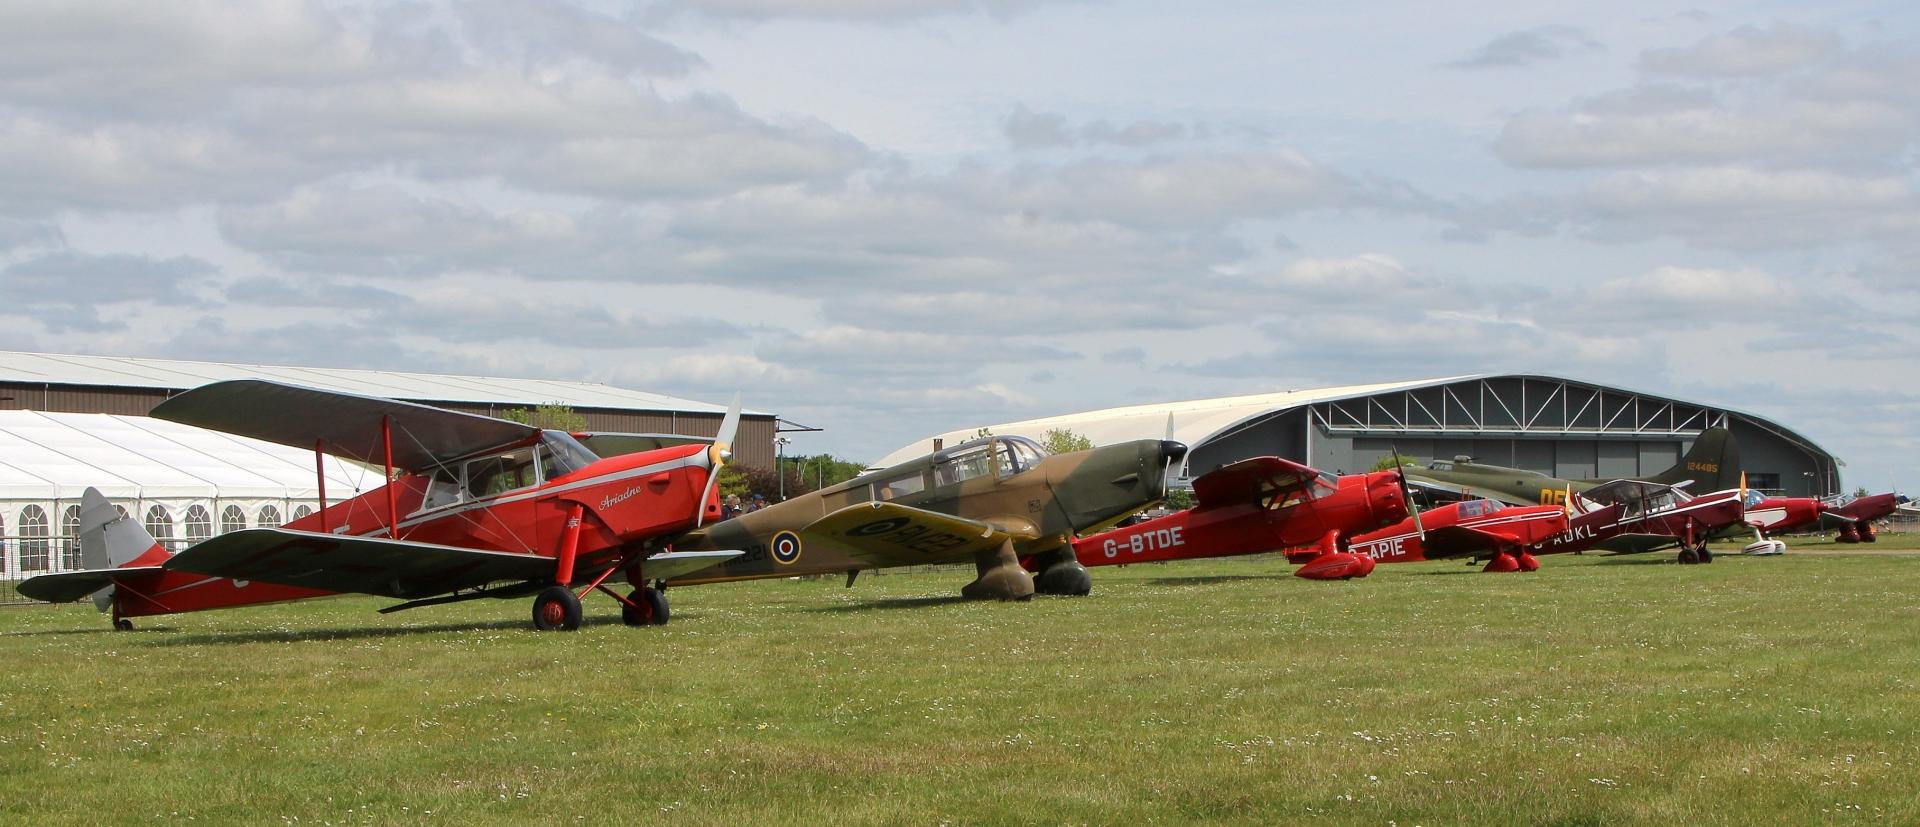 Lineup of GA aircraft at IWM Duxford